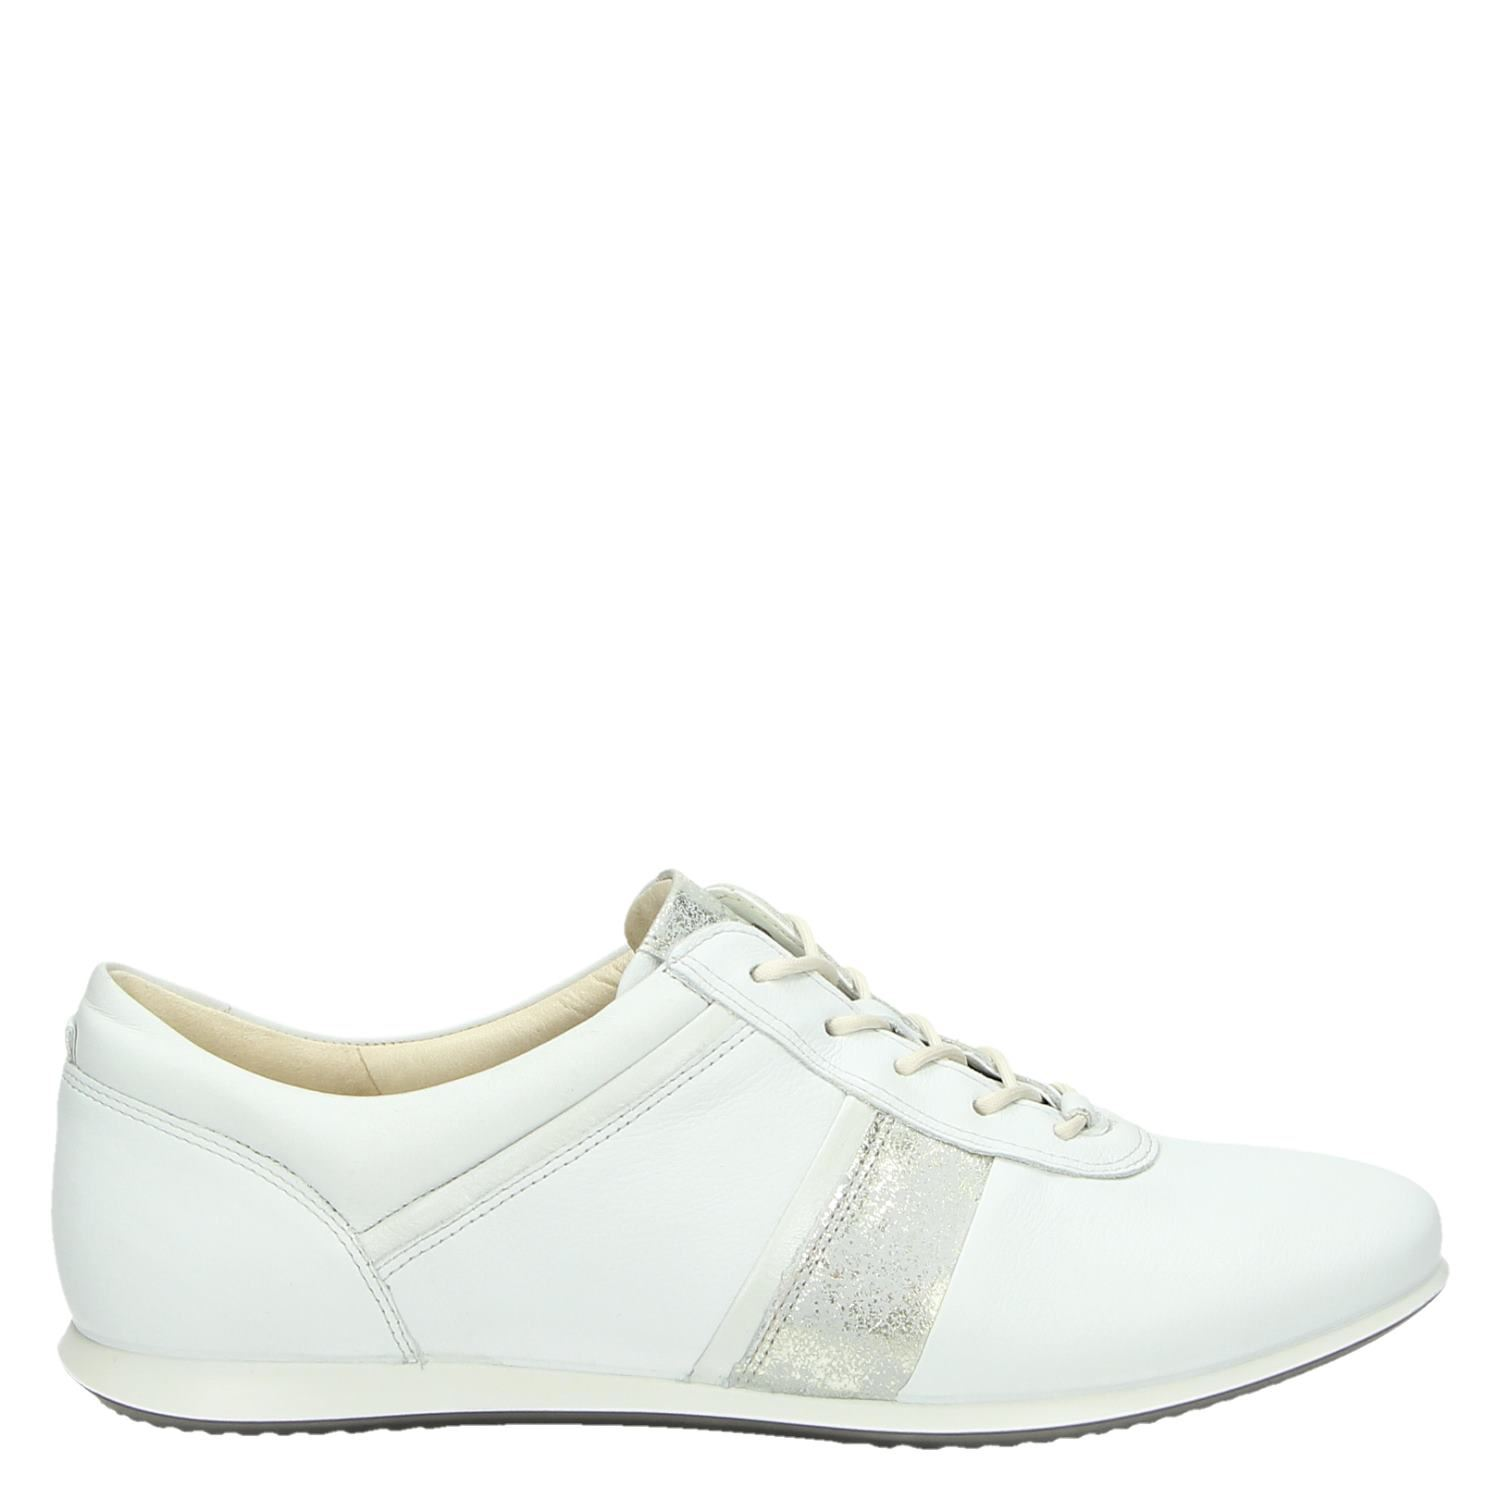 Ecco TOUCH dames lage sneakers